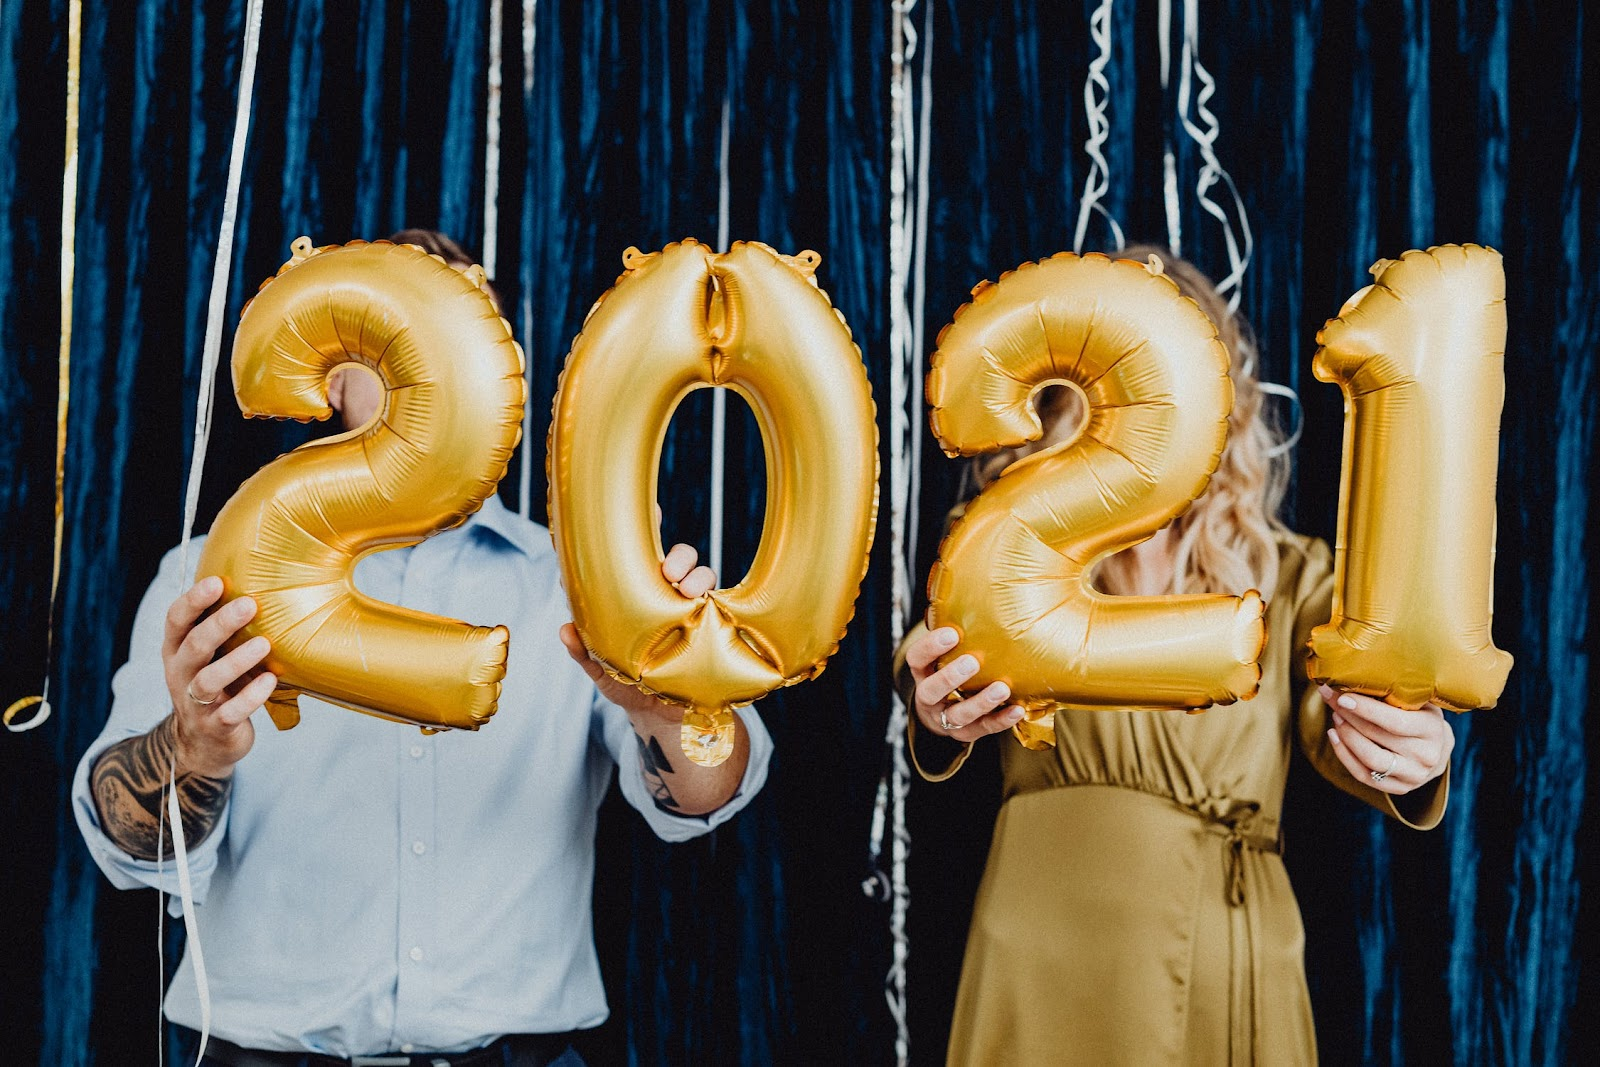 Two People Holding 2021 Golden Balloons